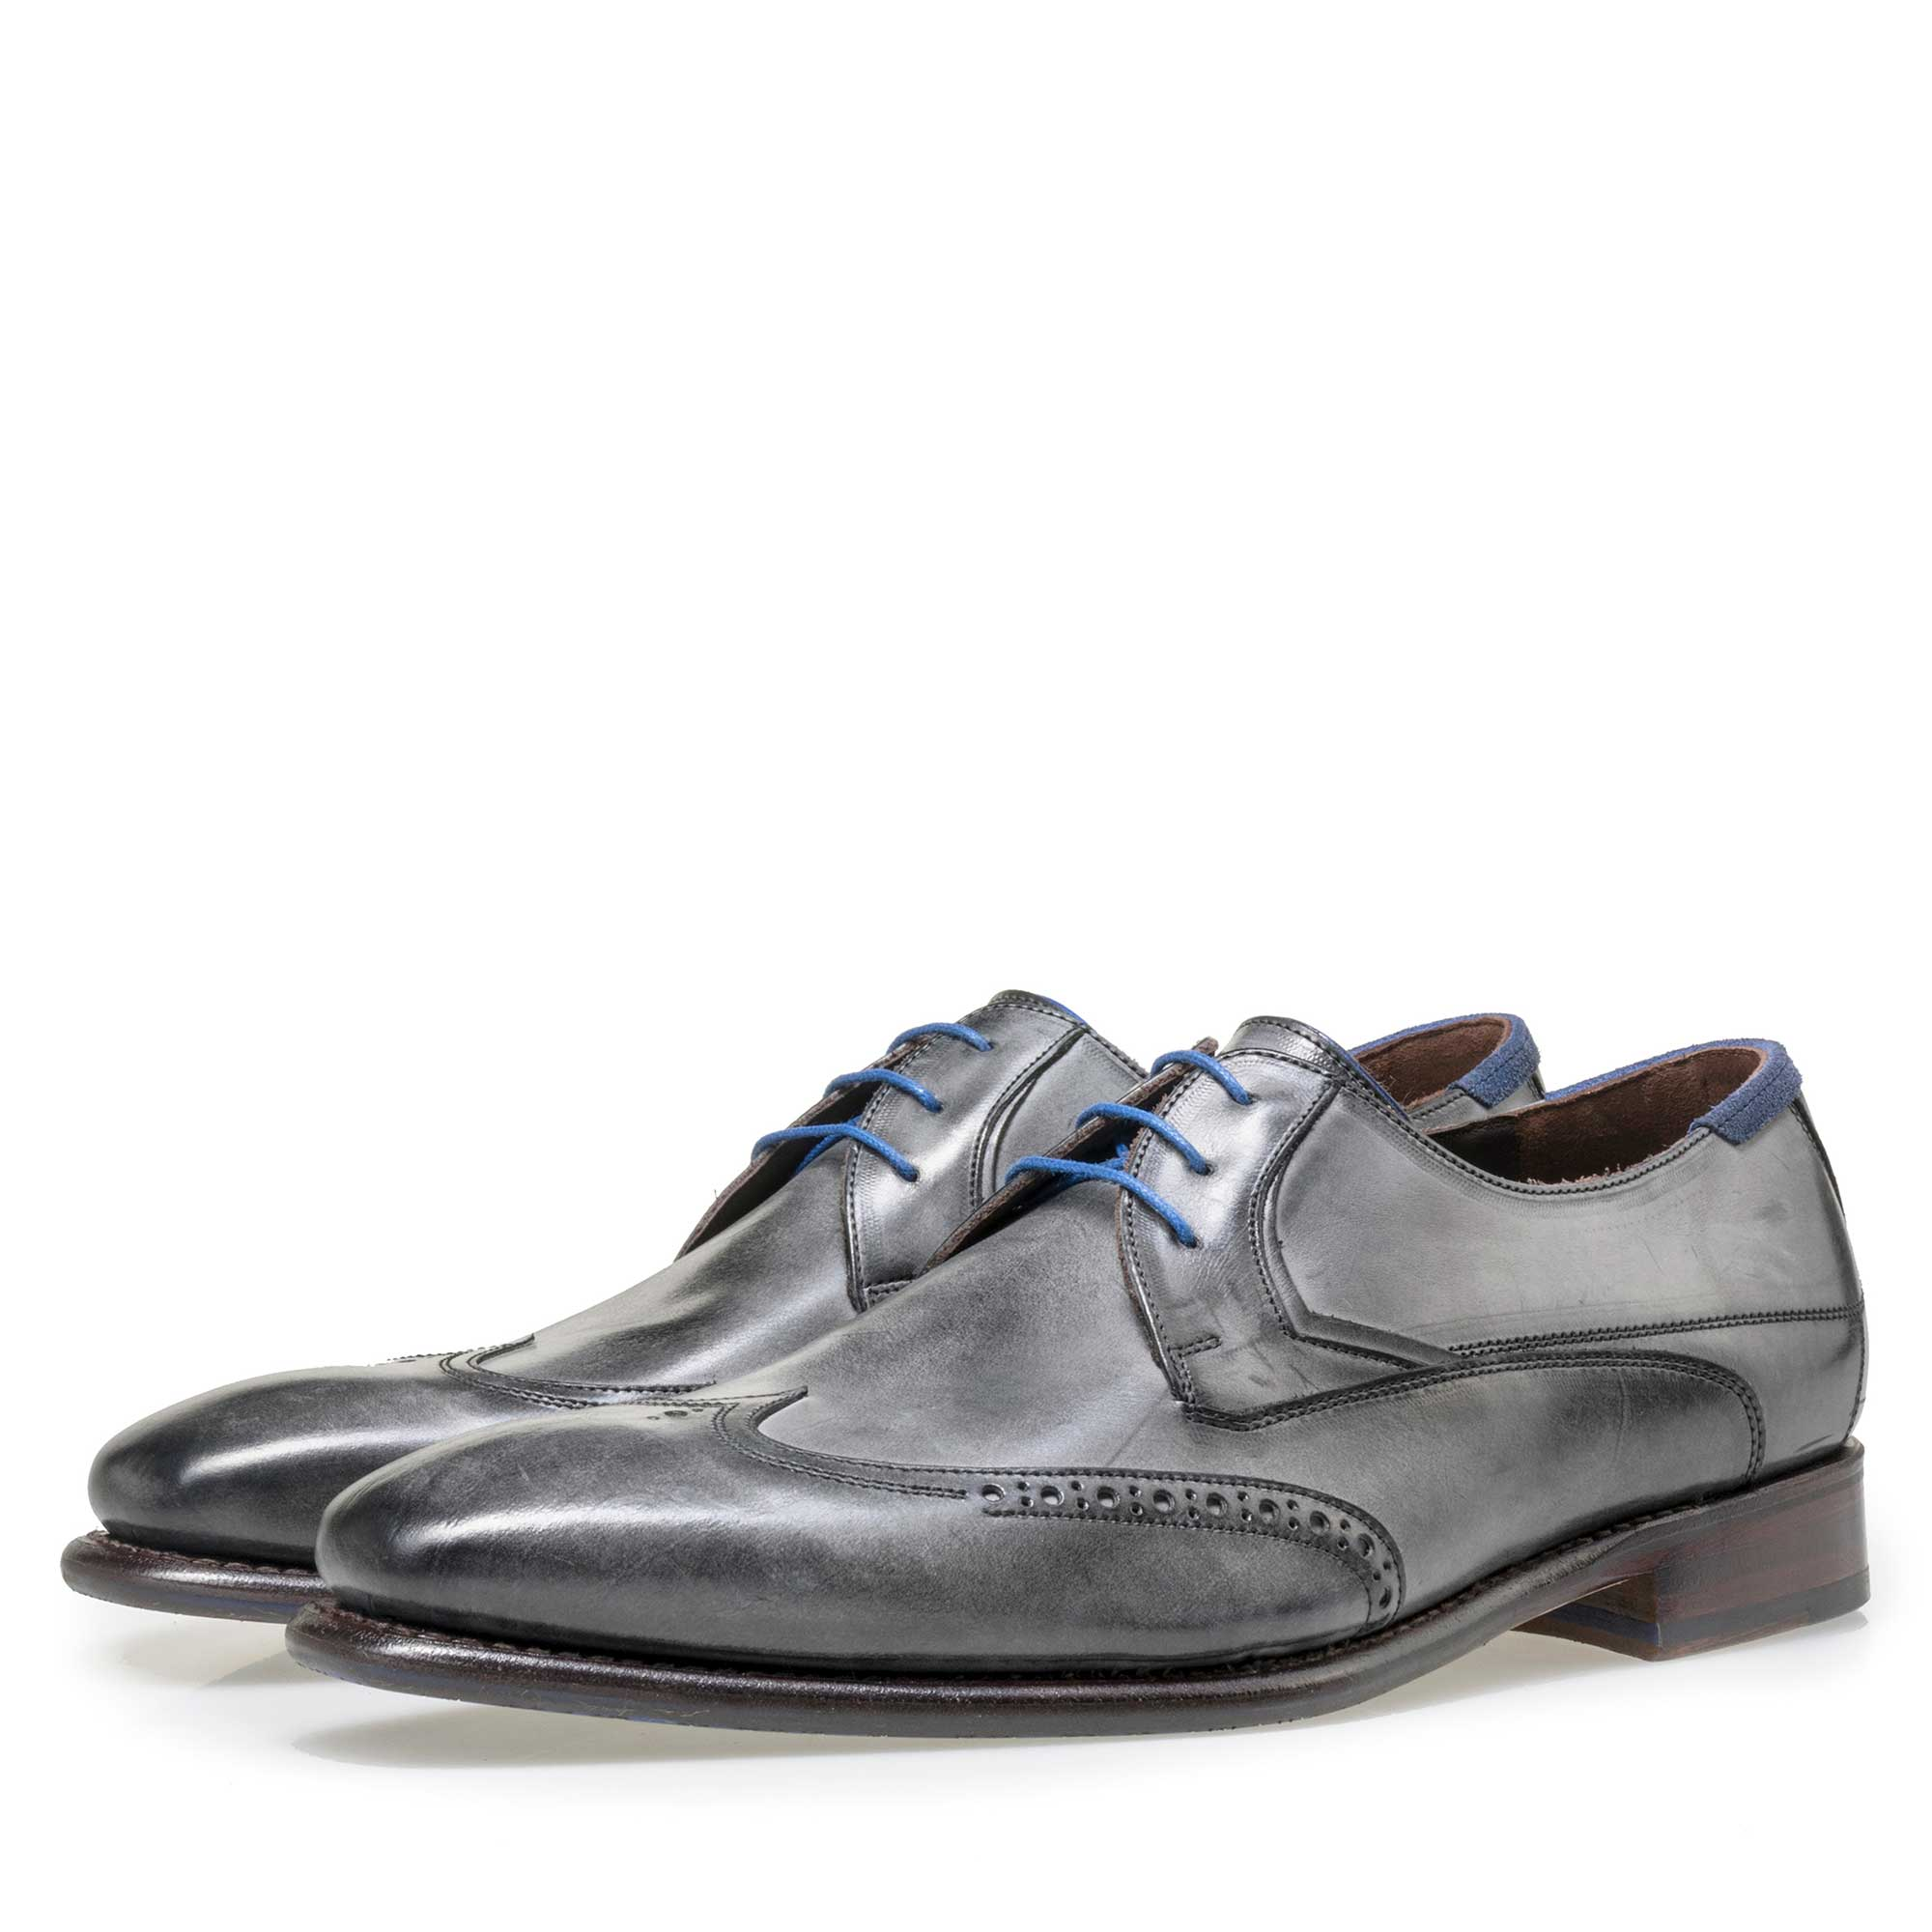 18039/00 - Floris van Bommel men's anthracite grey leather lace shoe